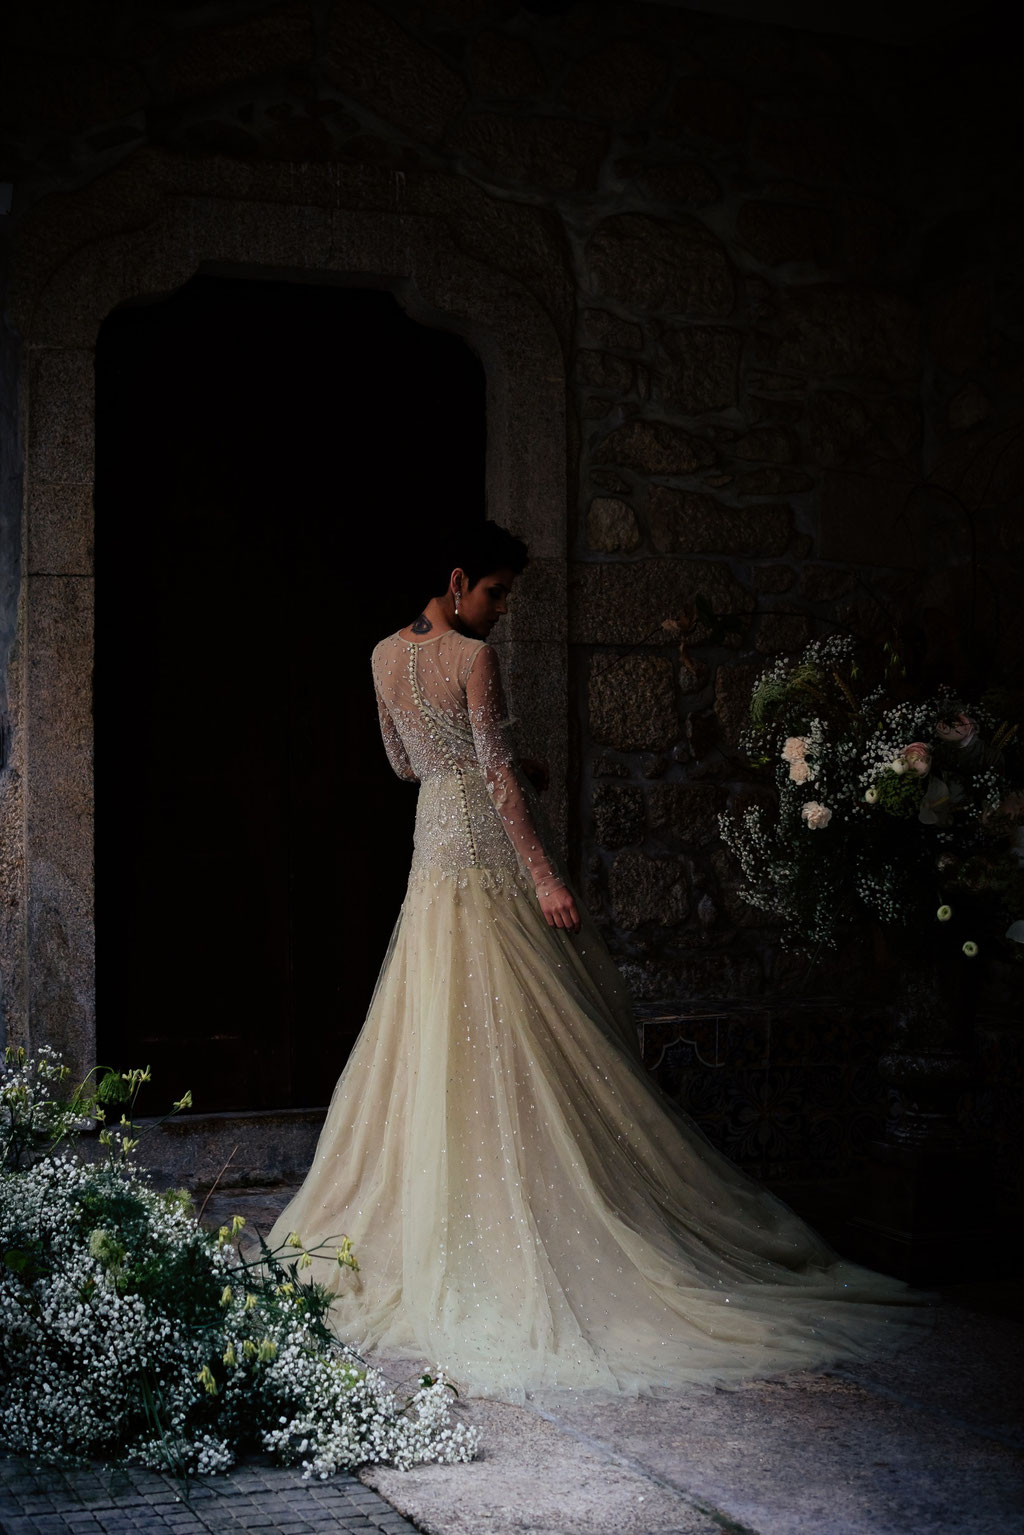 ROVA Fineart wedding photography - portugal castle fairy tale - Hochzeitsfotografie Schloss Burg - Elopement - destination wedding